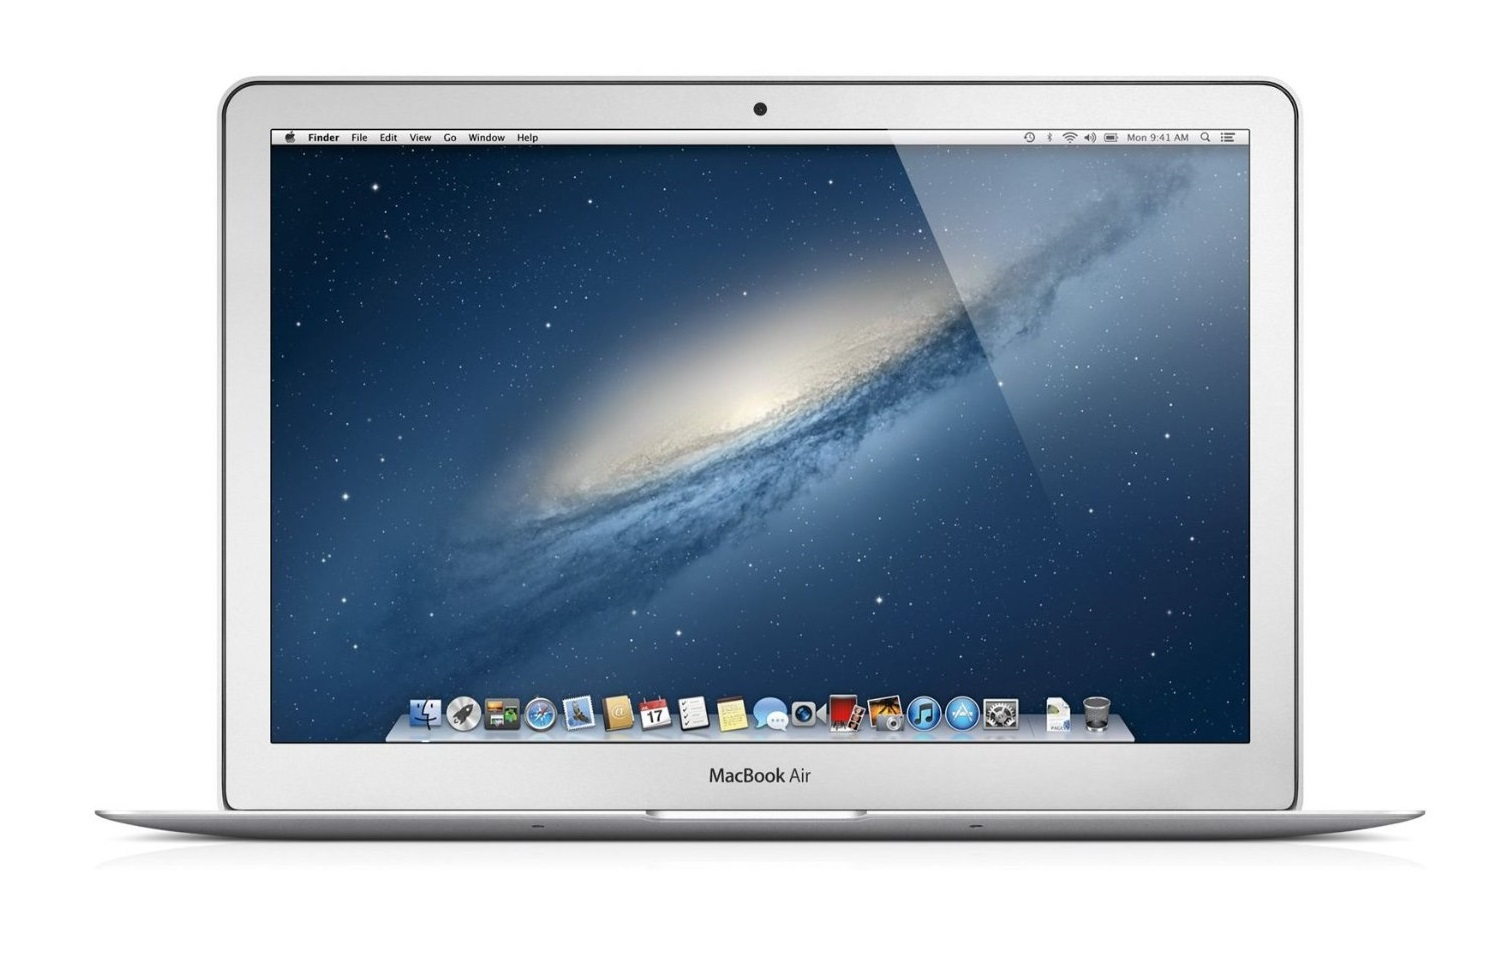 Apple MacBook Air MD223HN A 11-inch Laptop